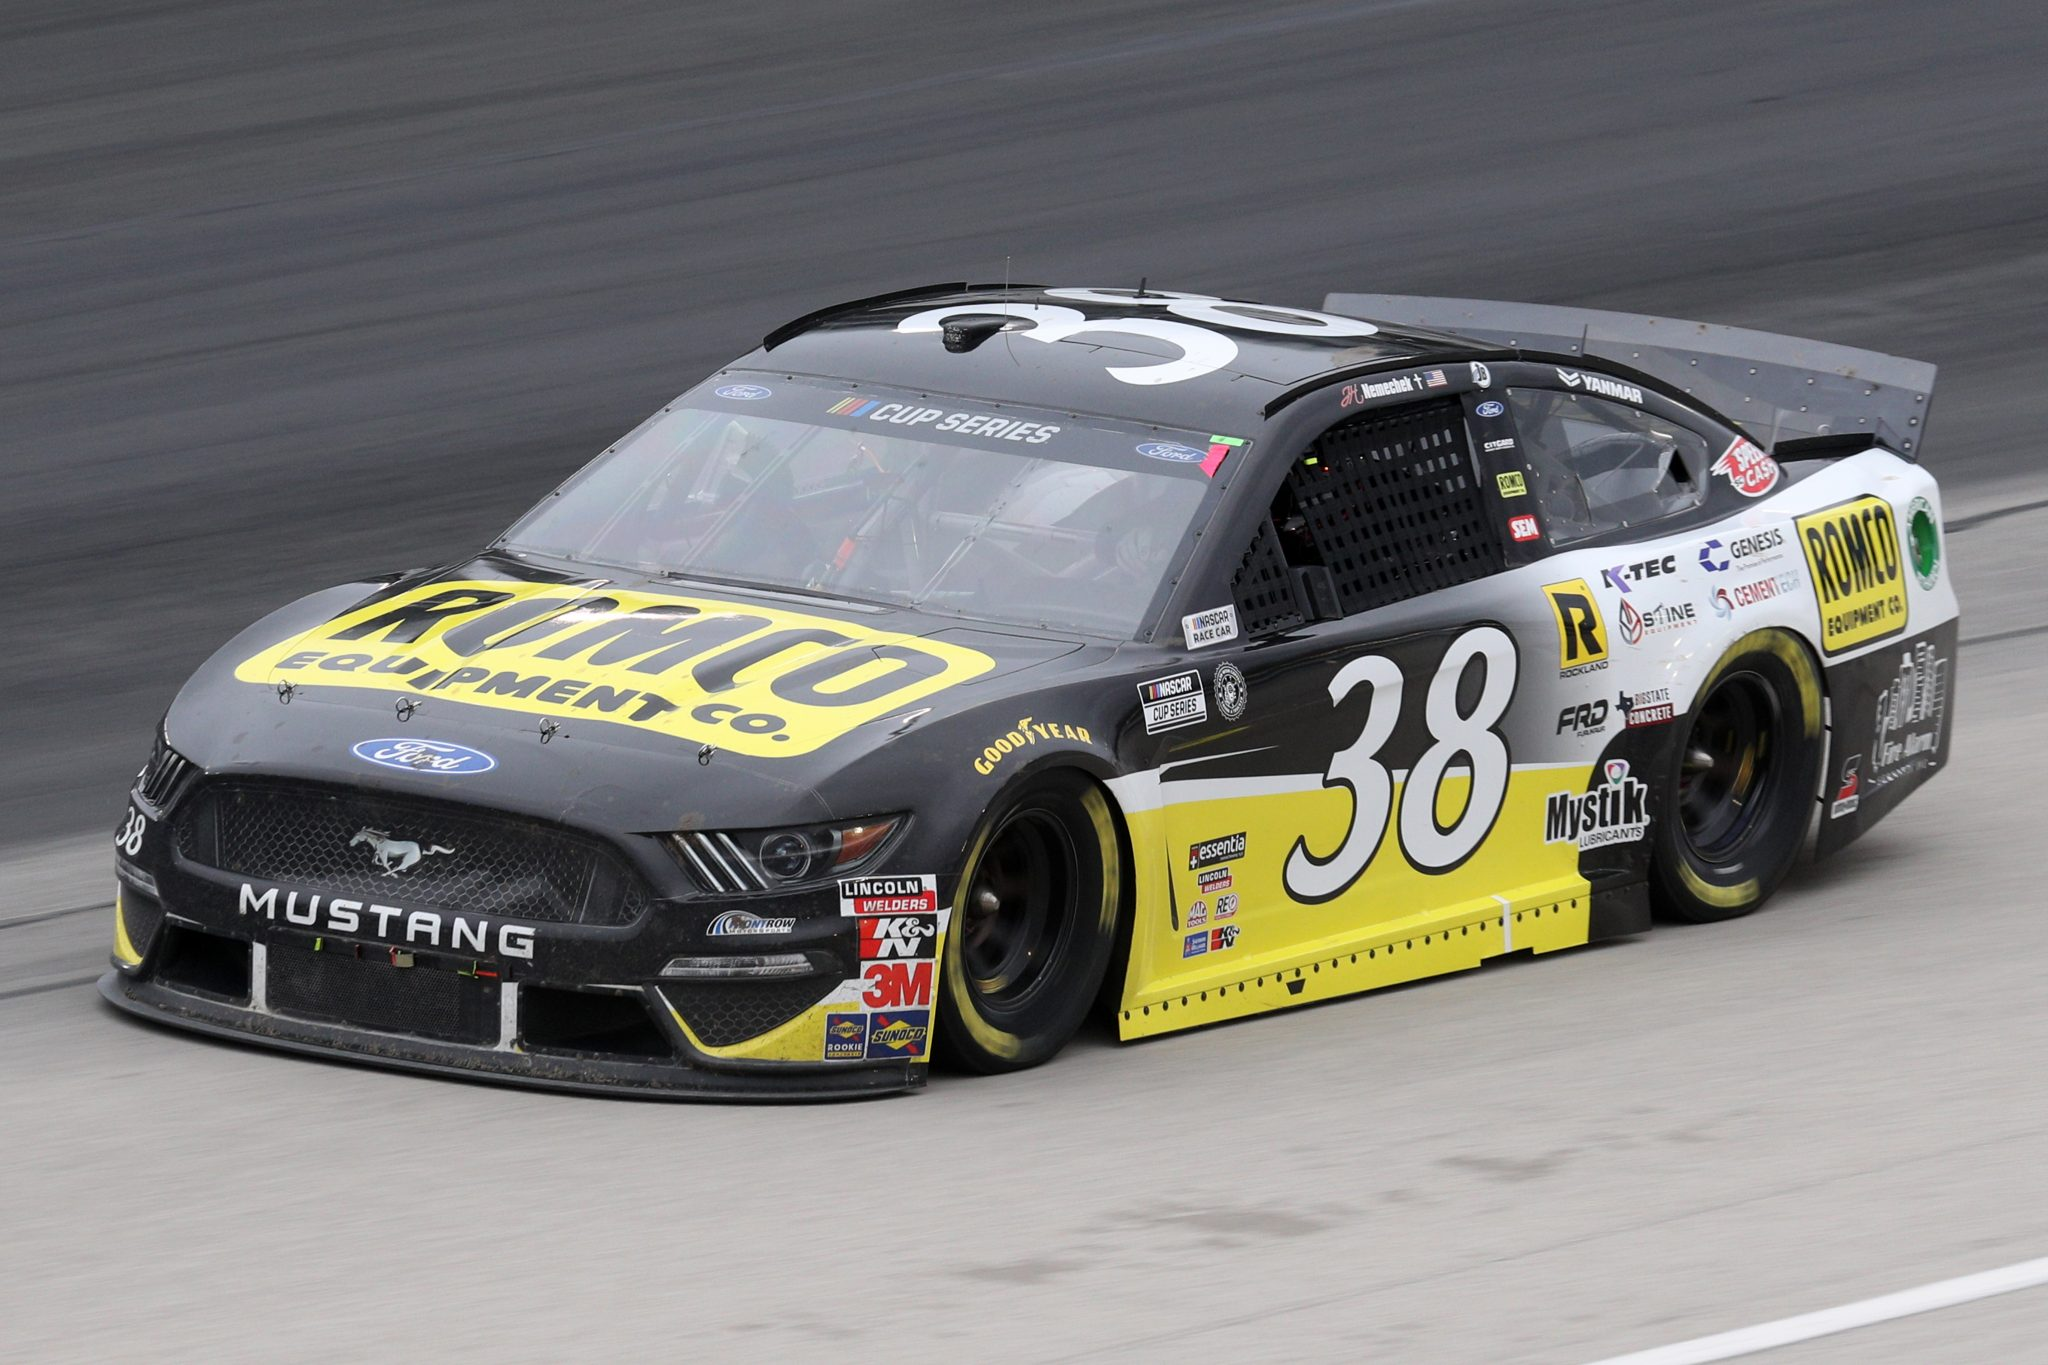 FORT WORTH, TEXAS - OCTOBER 28: John H. Nemechek, driver of the #38 ROMCO Ford, drives during the NASCAR Cup Series Autotrader EchoPark Automotive 500 at Texas Motor Speedway on October 28, 2020 in Fort Worth, Texas. (Photo by Chris Graythen/Getty Images)   Getty Images